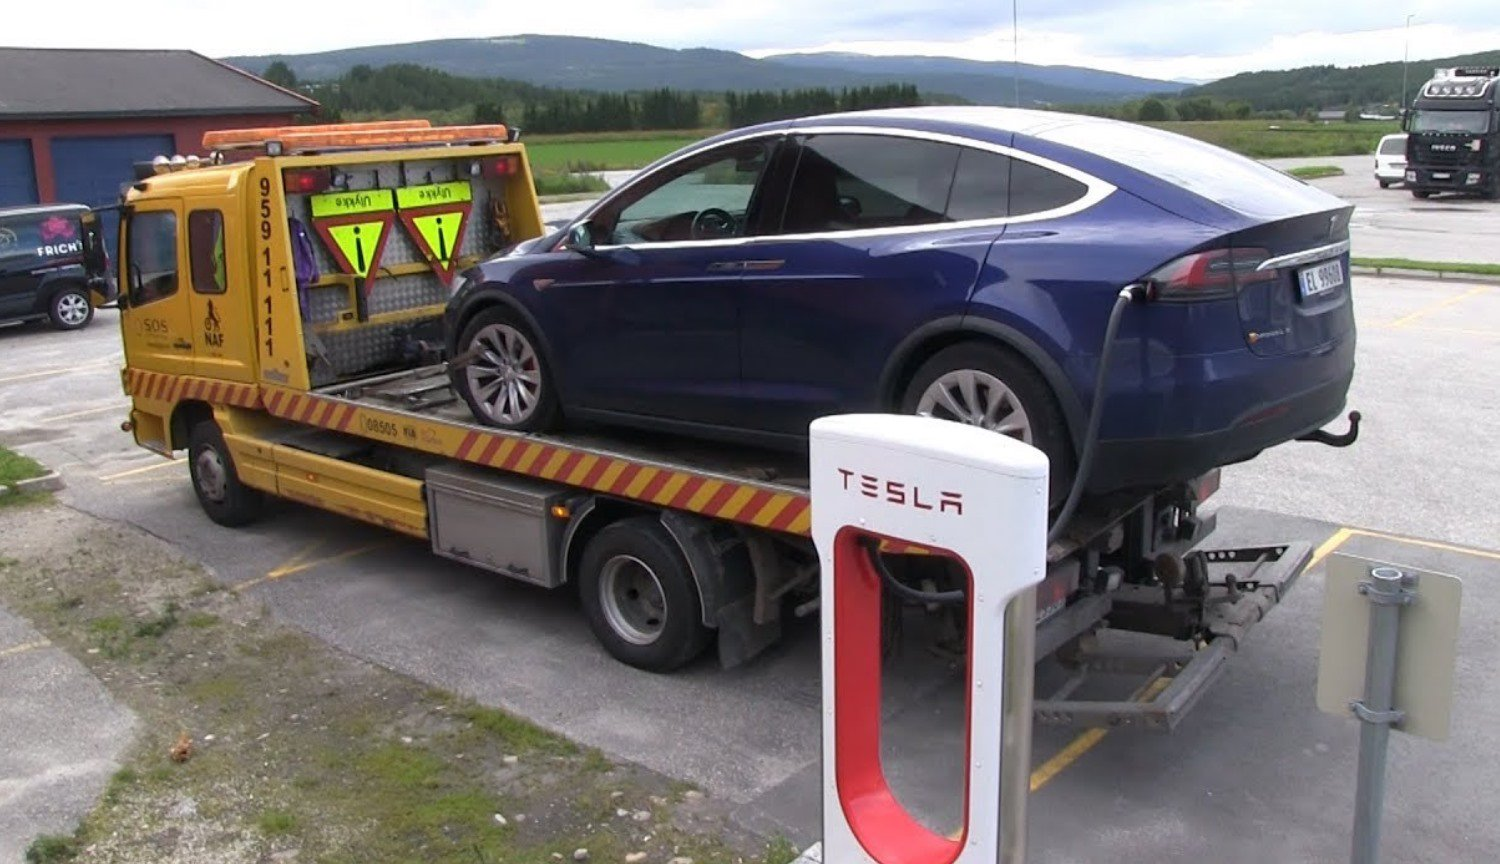 Tesla cars will automatically call tow truck in case of breakage